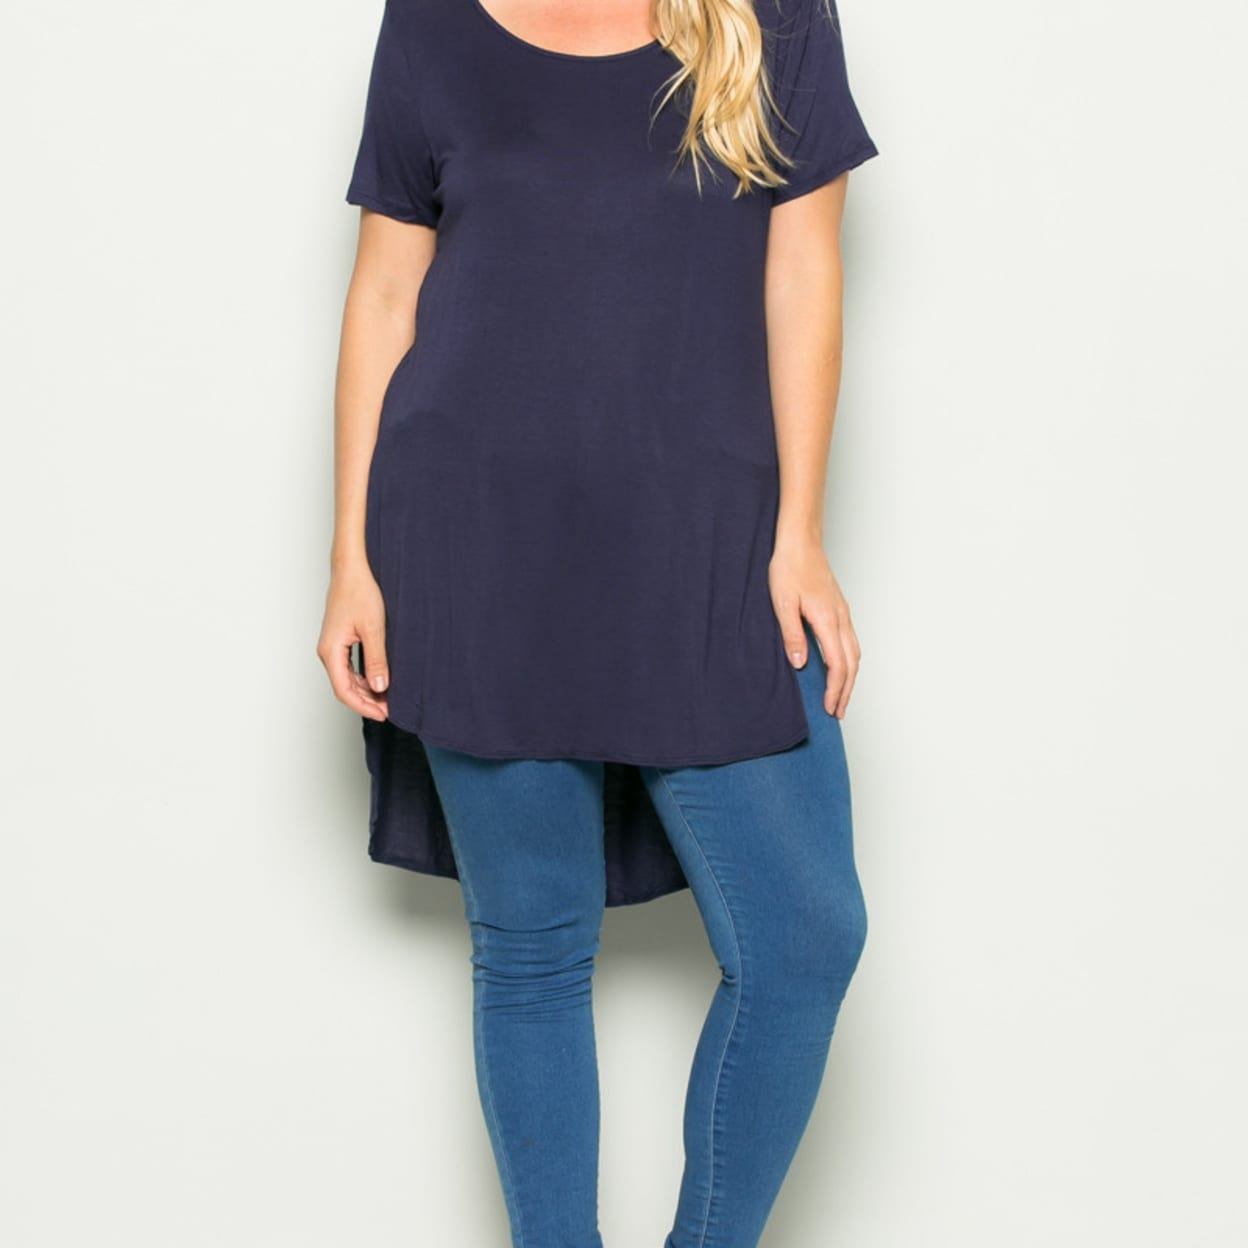 fed5f4e7e1c422 Shop Navy Plus Size High-low Scoop Neck Shirt - Free Shipping On Orders  Over $45 - Overstock - 23024071